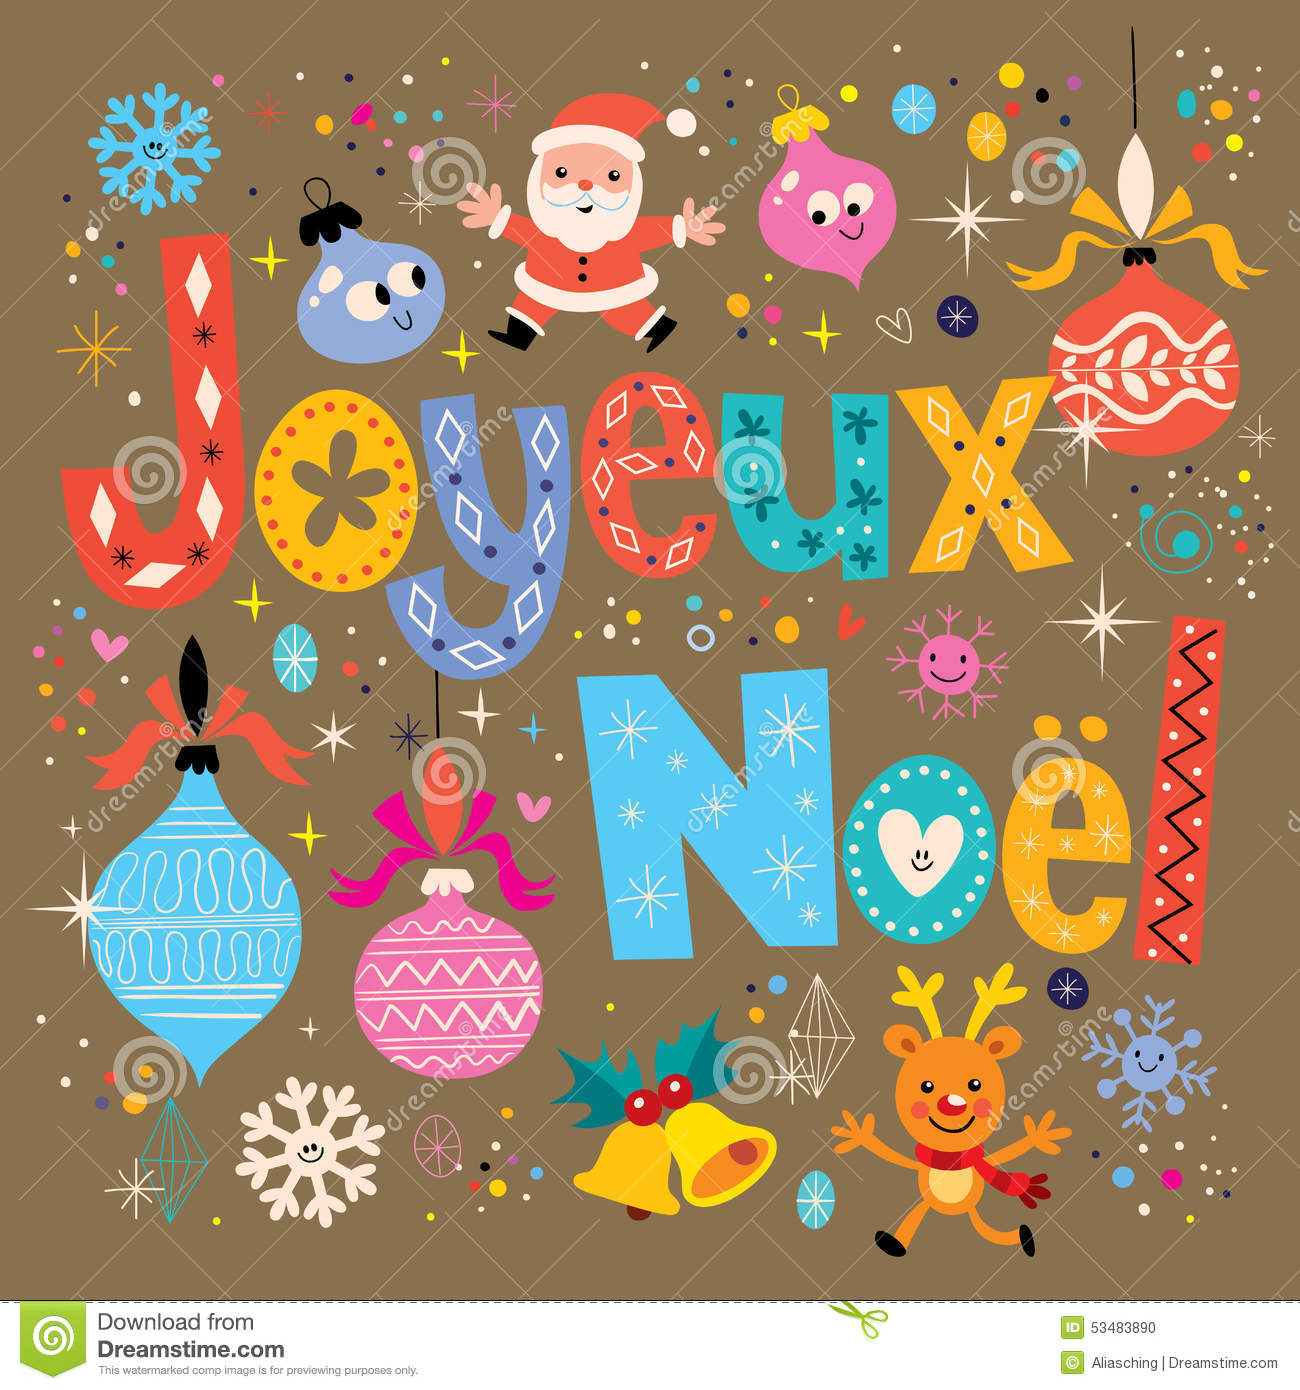 joyeux noel merry christmas in french greeting card - Merry Christmas French